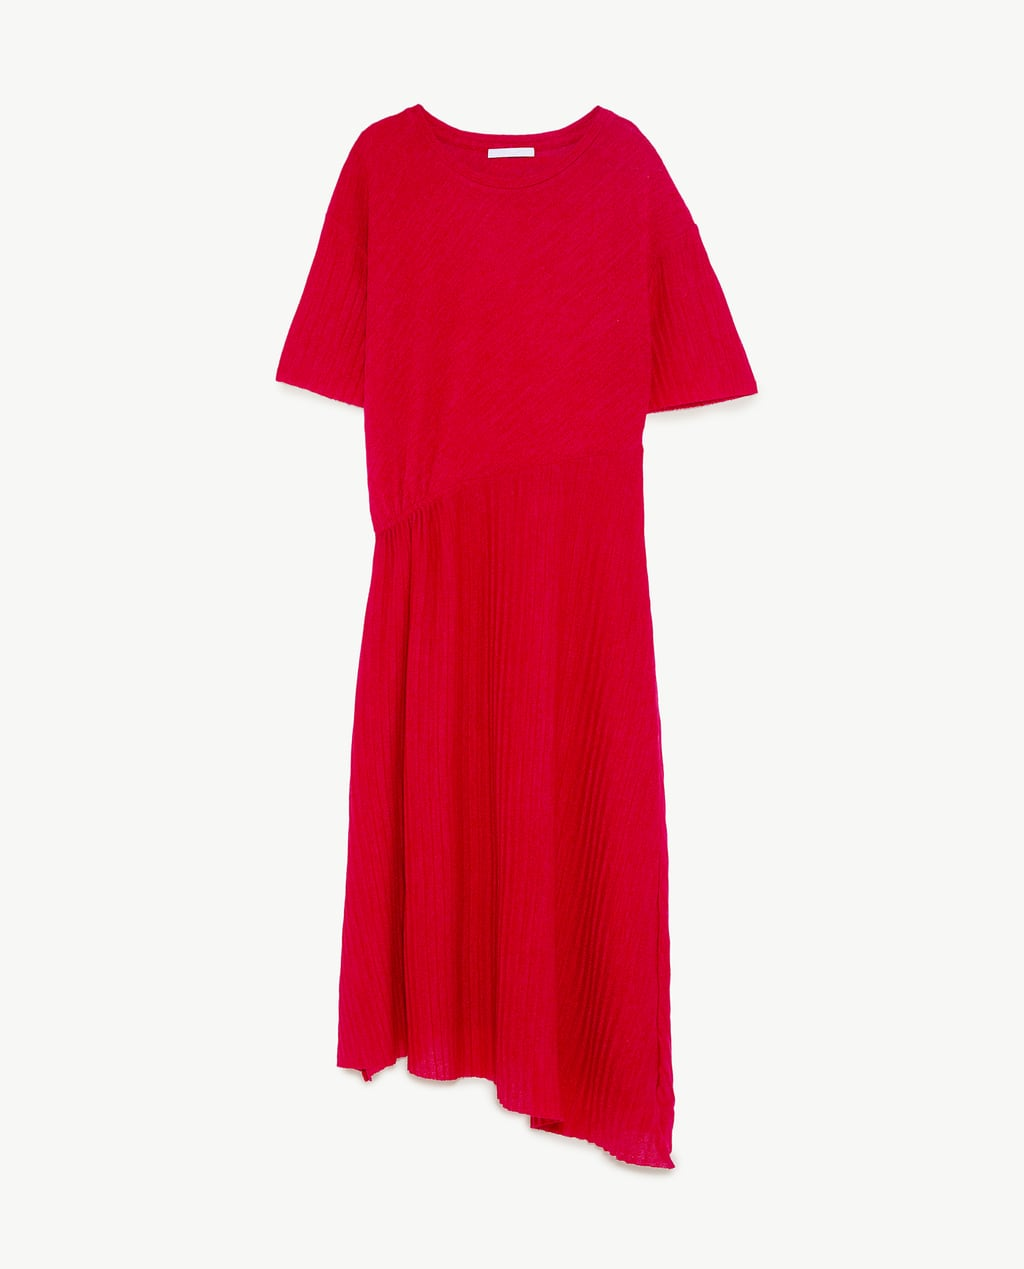 - Round neck dress with short sleeves. Cinched waist with gathered detail on the side. Asymmetric hem.